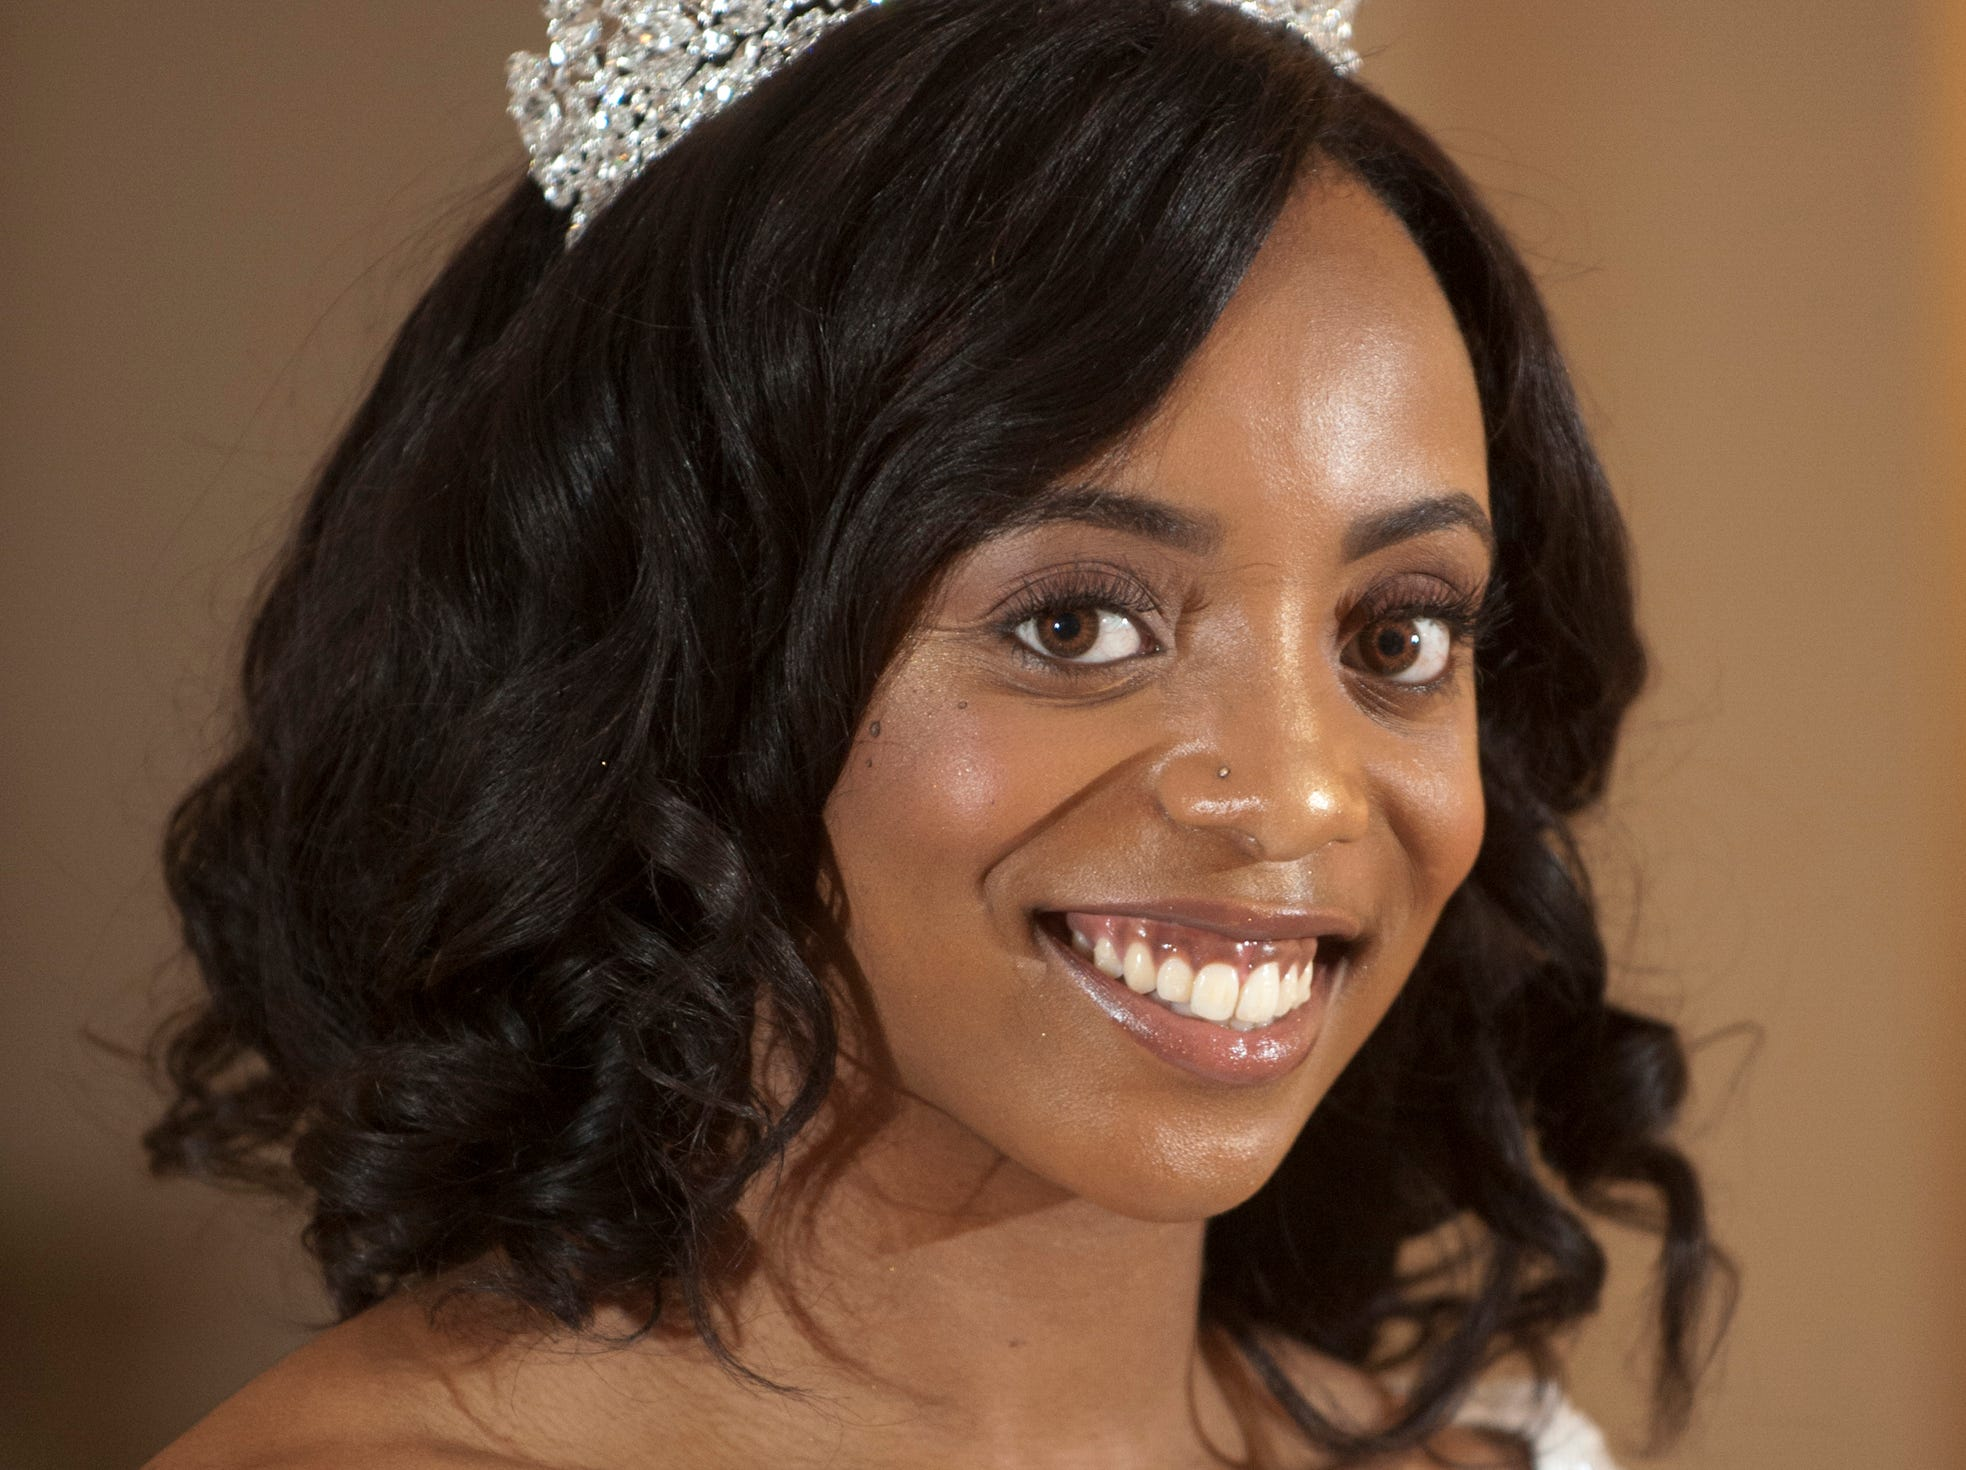 Kentucky Derby Festival Princess Brittany Patillo, 22, from the west end of Louisville, is a University of Louisville senior majoring in theater arts. 04 January 2019